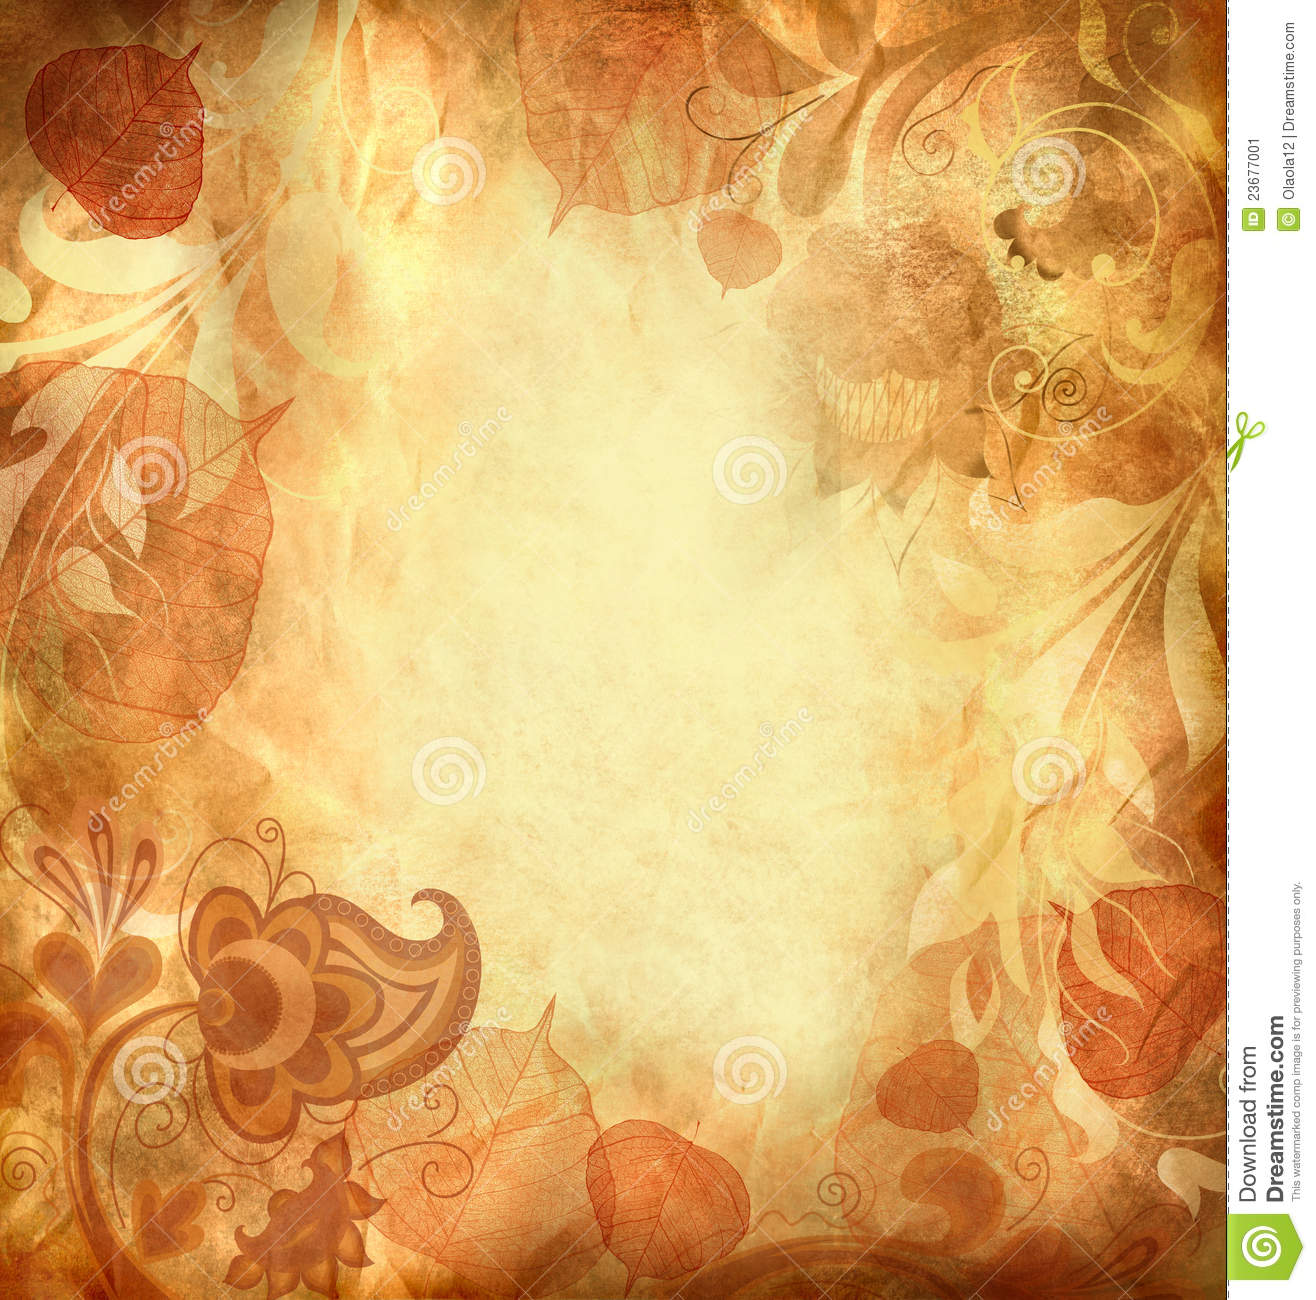 Fall Leaves Watercolor Wallpaper Vintage Background With Leaves And Patterns Stock